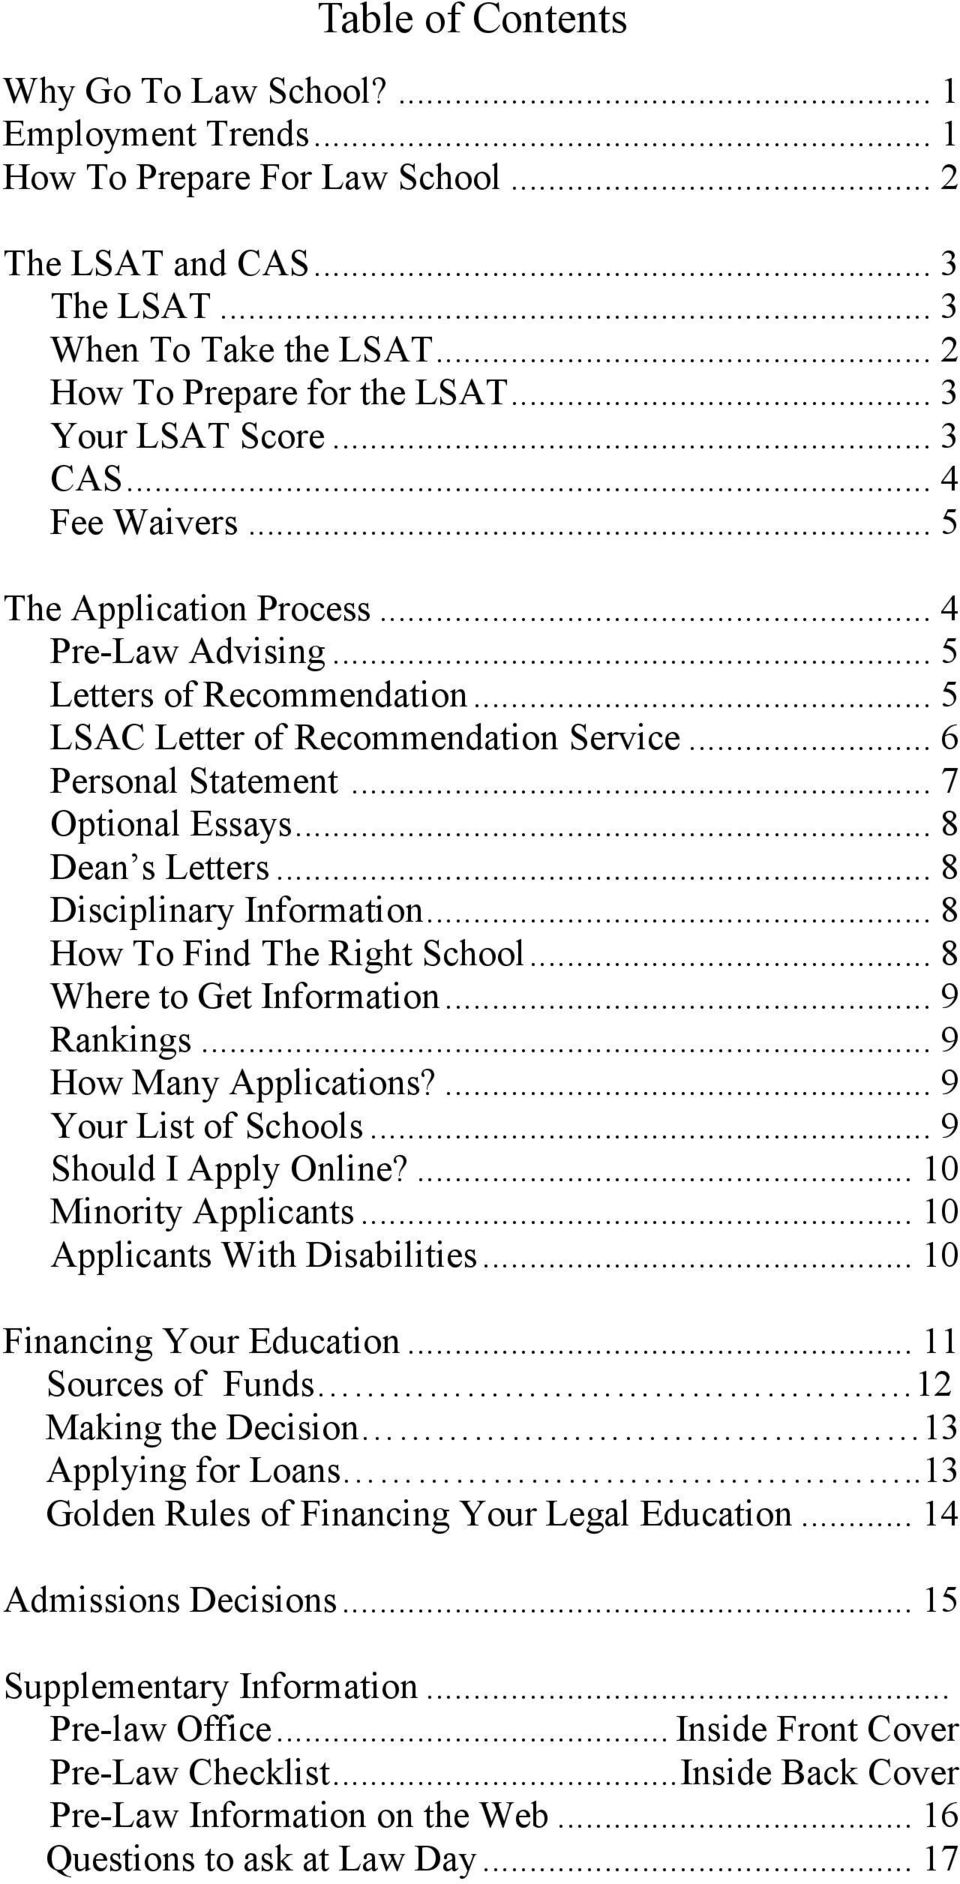 .. 7 Optional Essays... 8 Dean s Letters... 8 Disciplinary Information... 8 How To Find The Right School... 8 Where to Get Information... 9 Rankings... 9 How Many Applications?... 9 Your List of Schools.